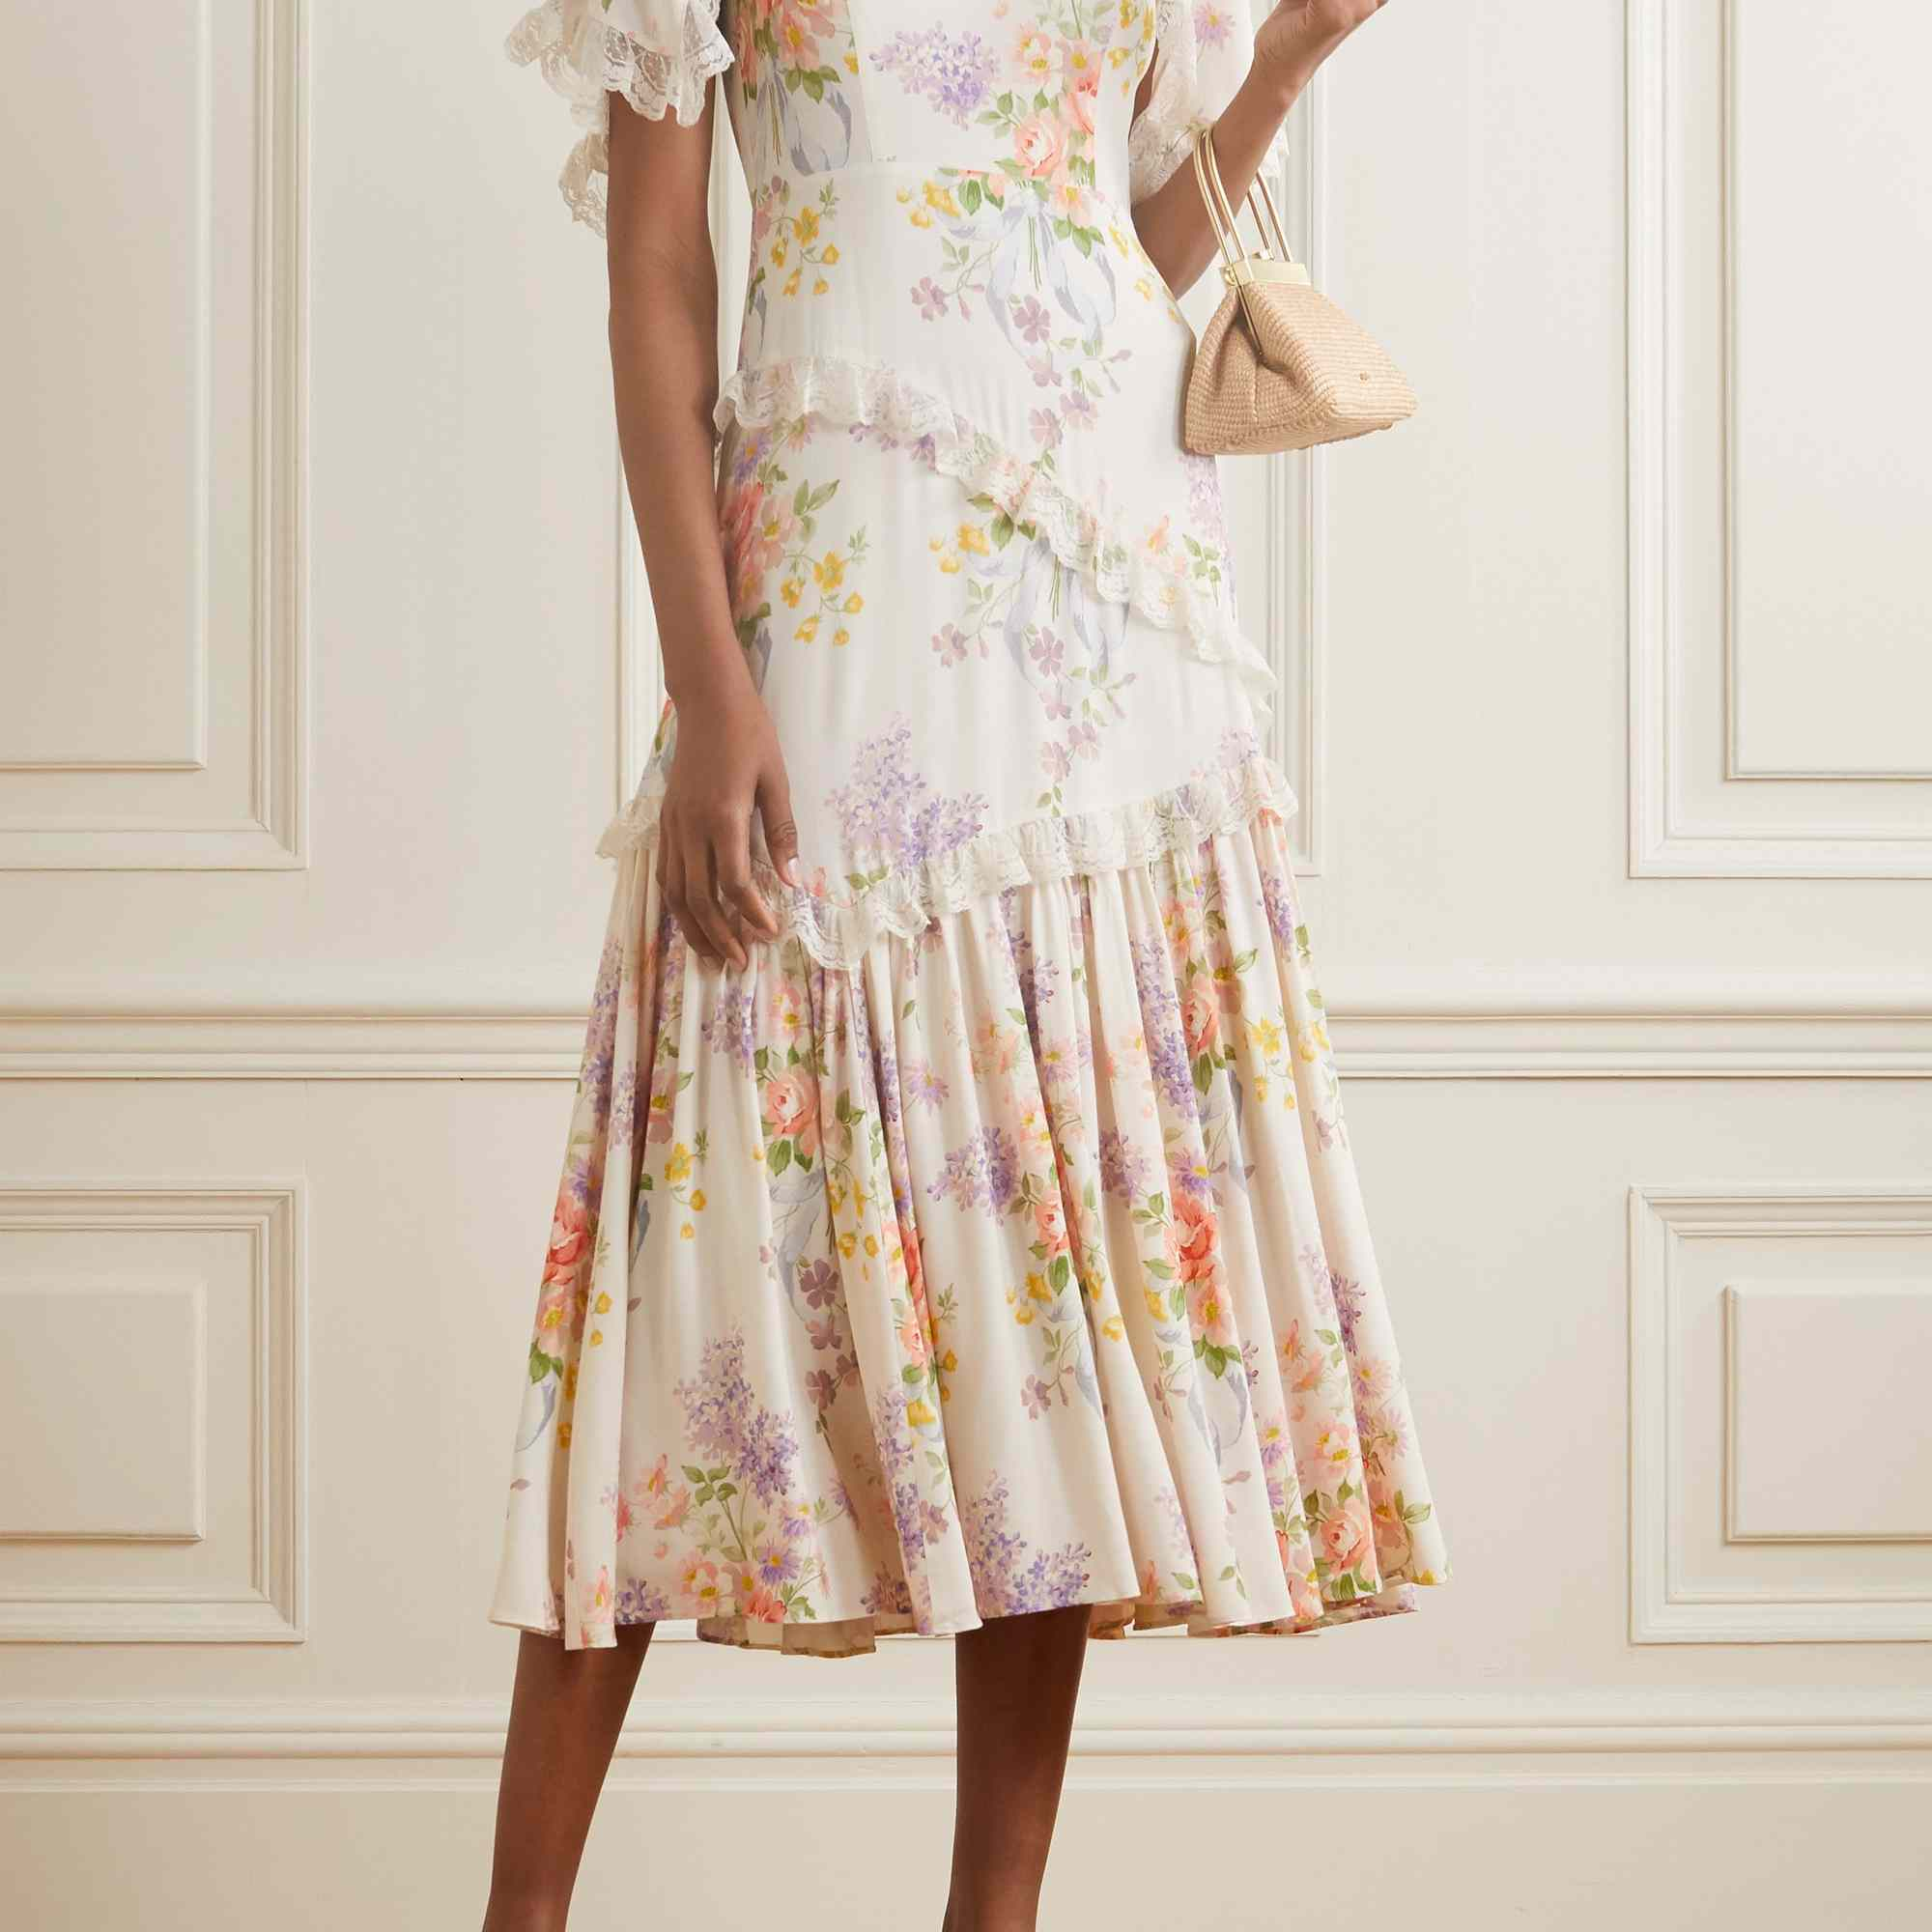 Needle & Thread Elsa Lace-Trimmed Floral-Print Broderie Anglaise Crepe Dress, $520, on sale $265